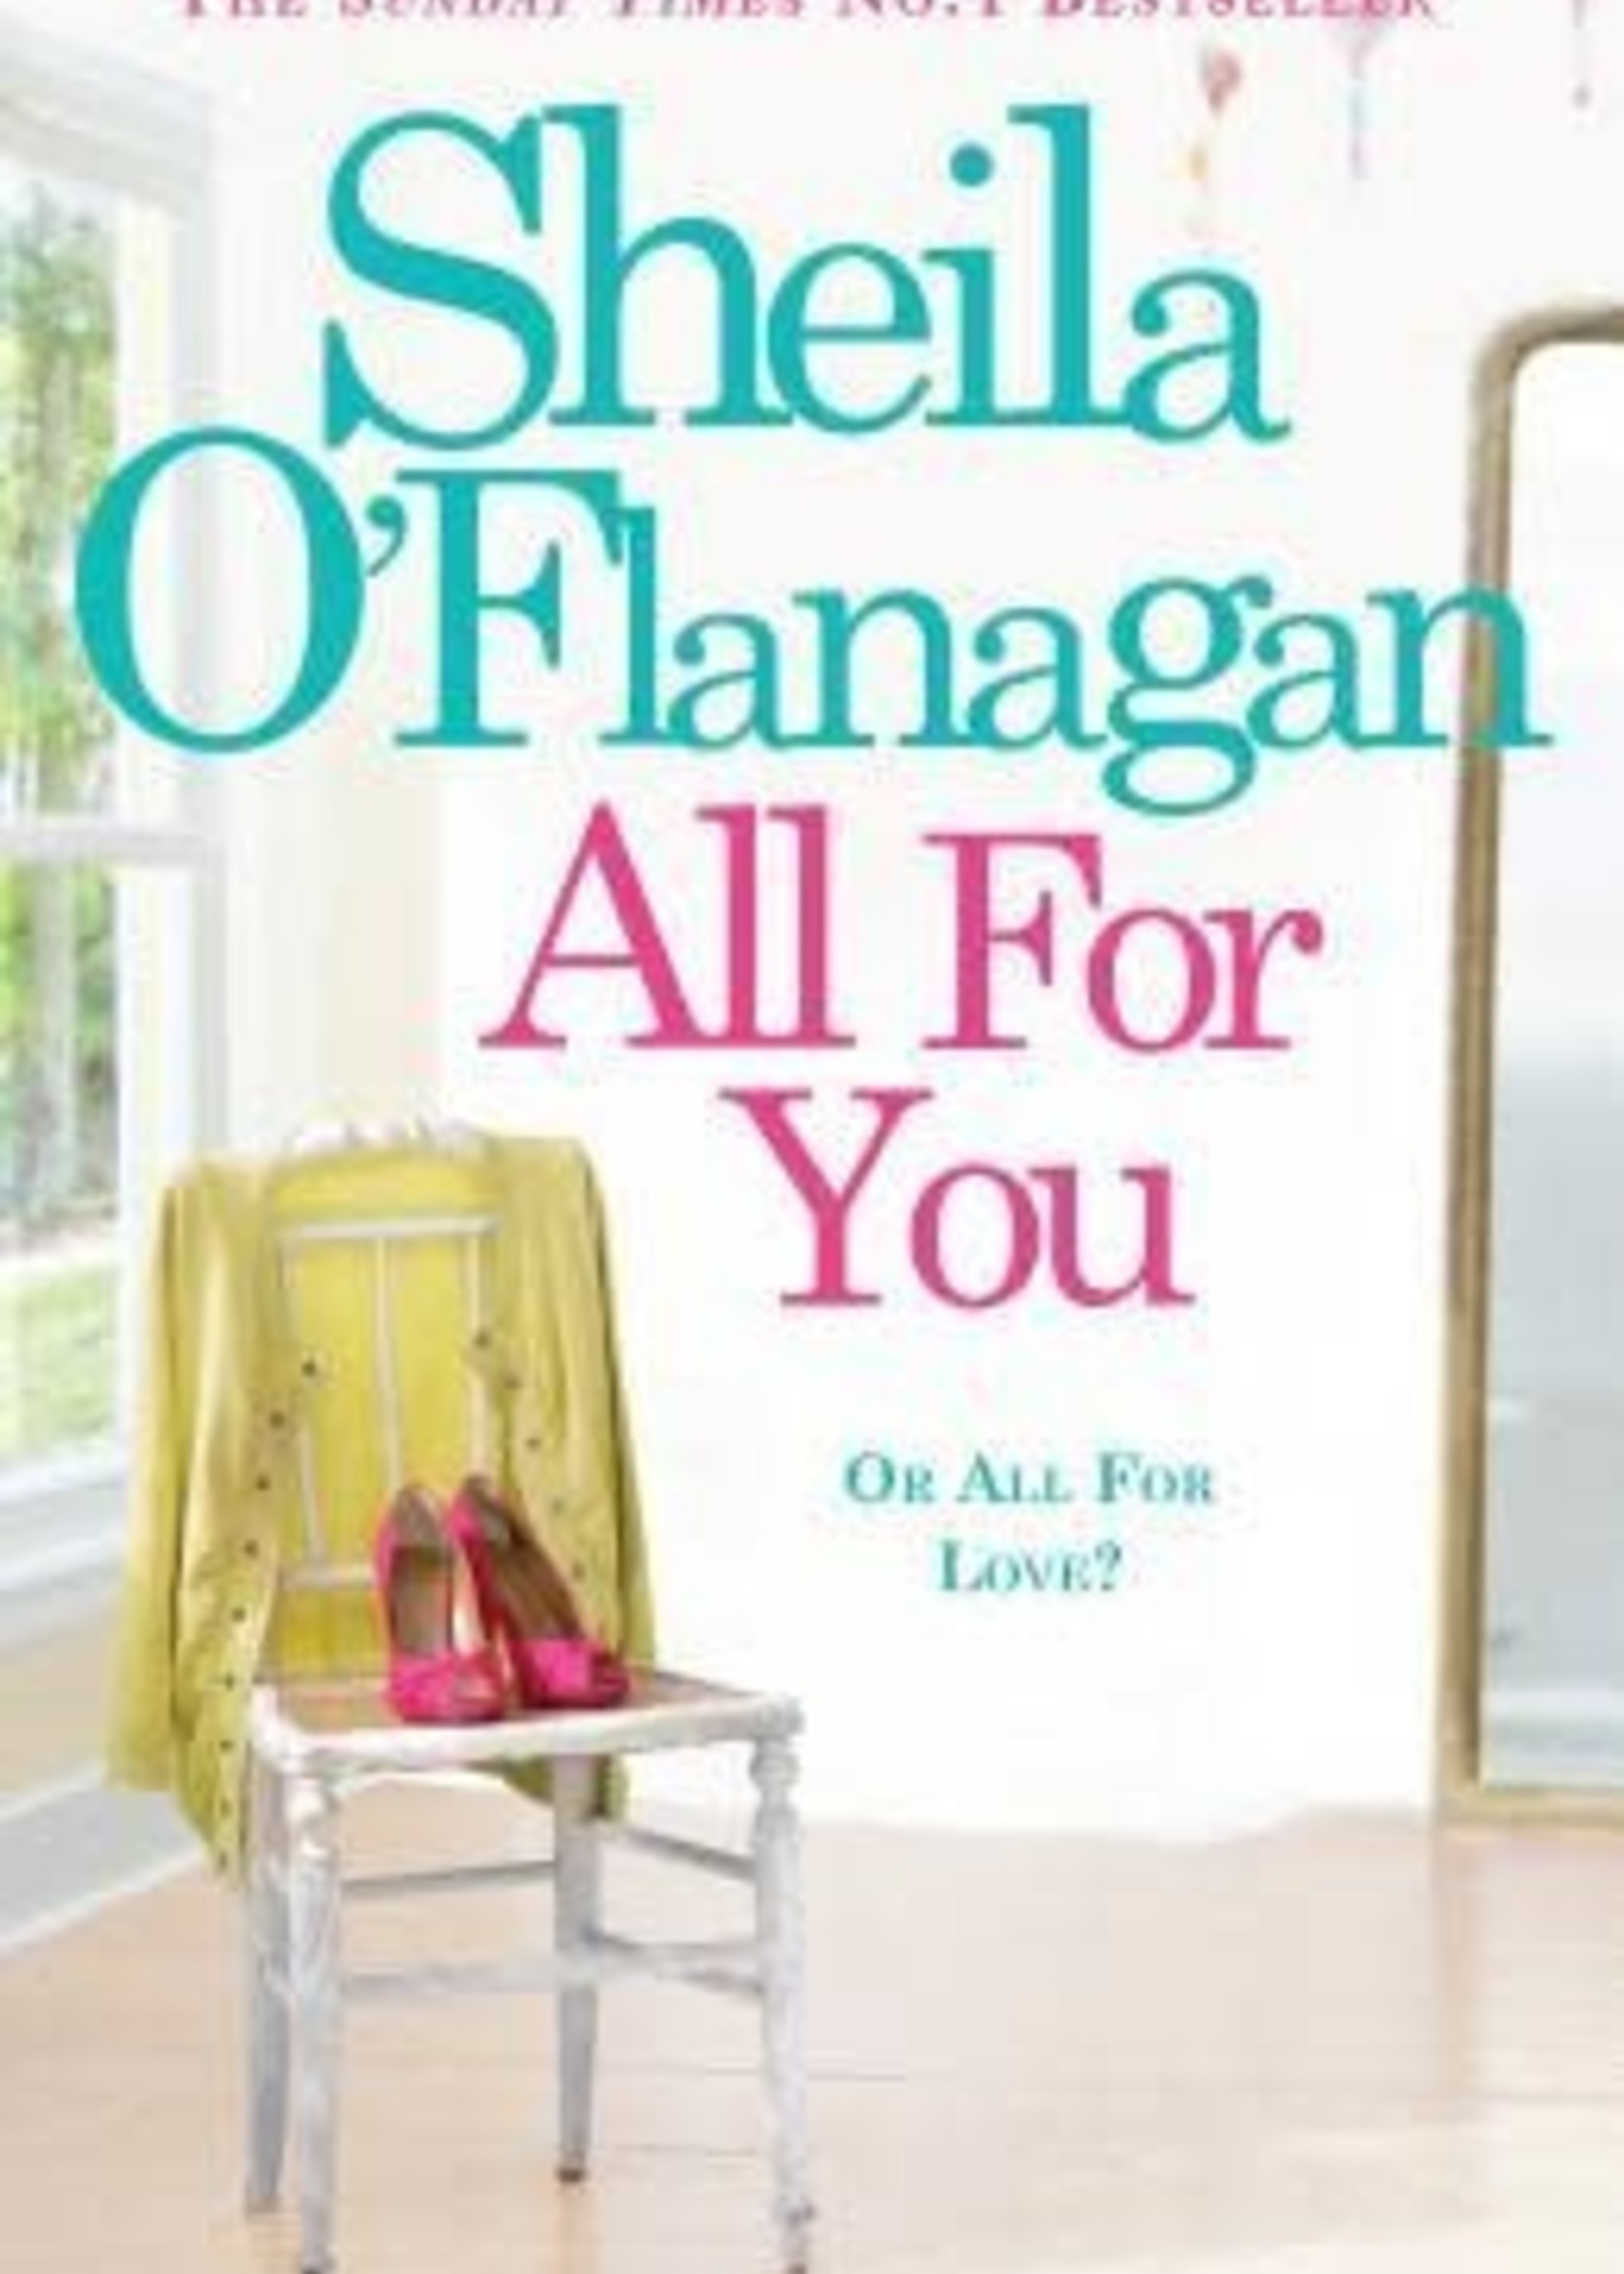 USED - All For You by Sheila O'Flanagan